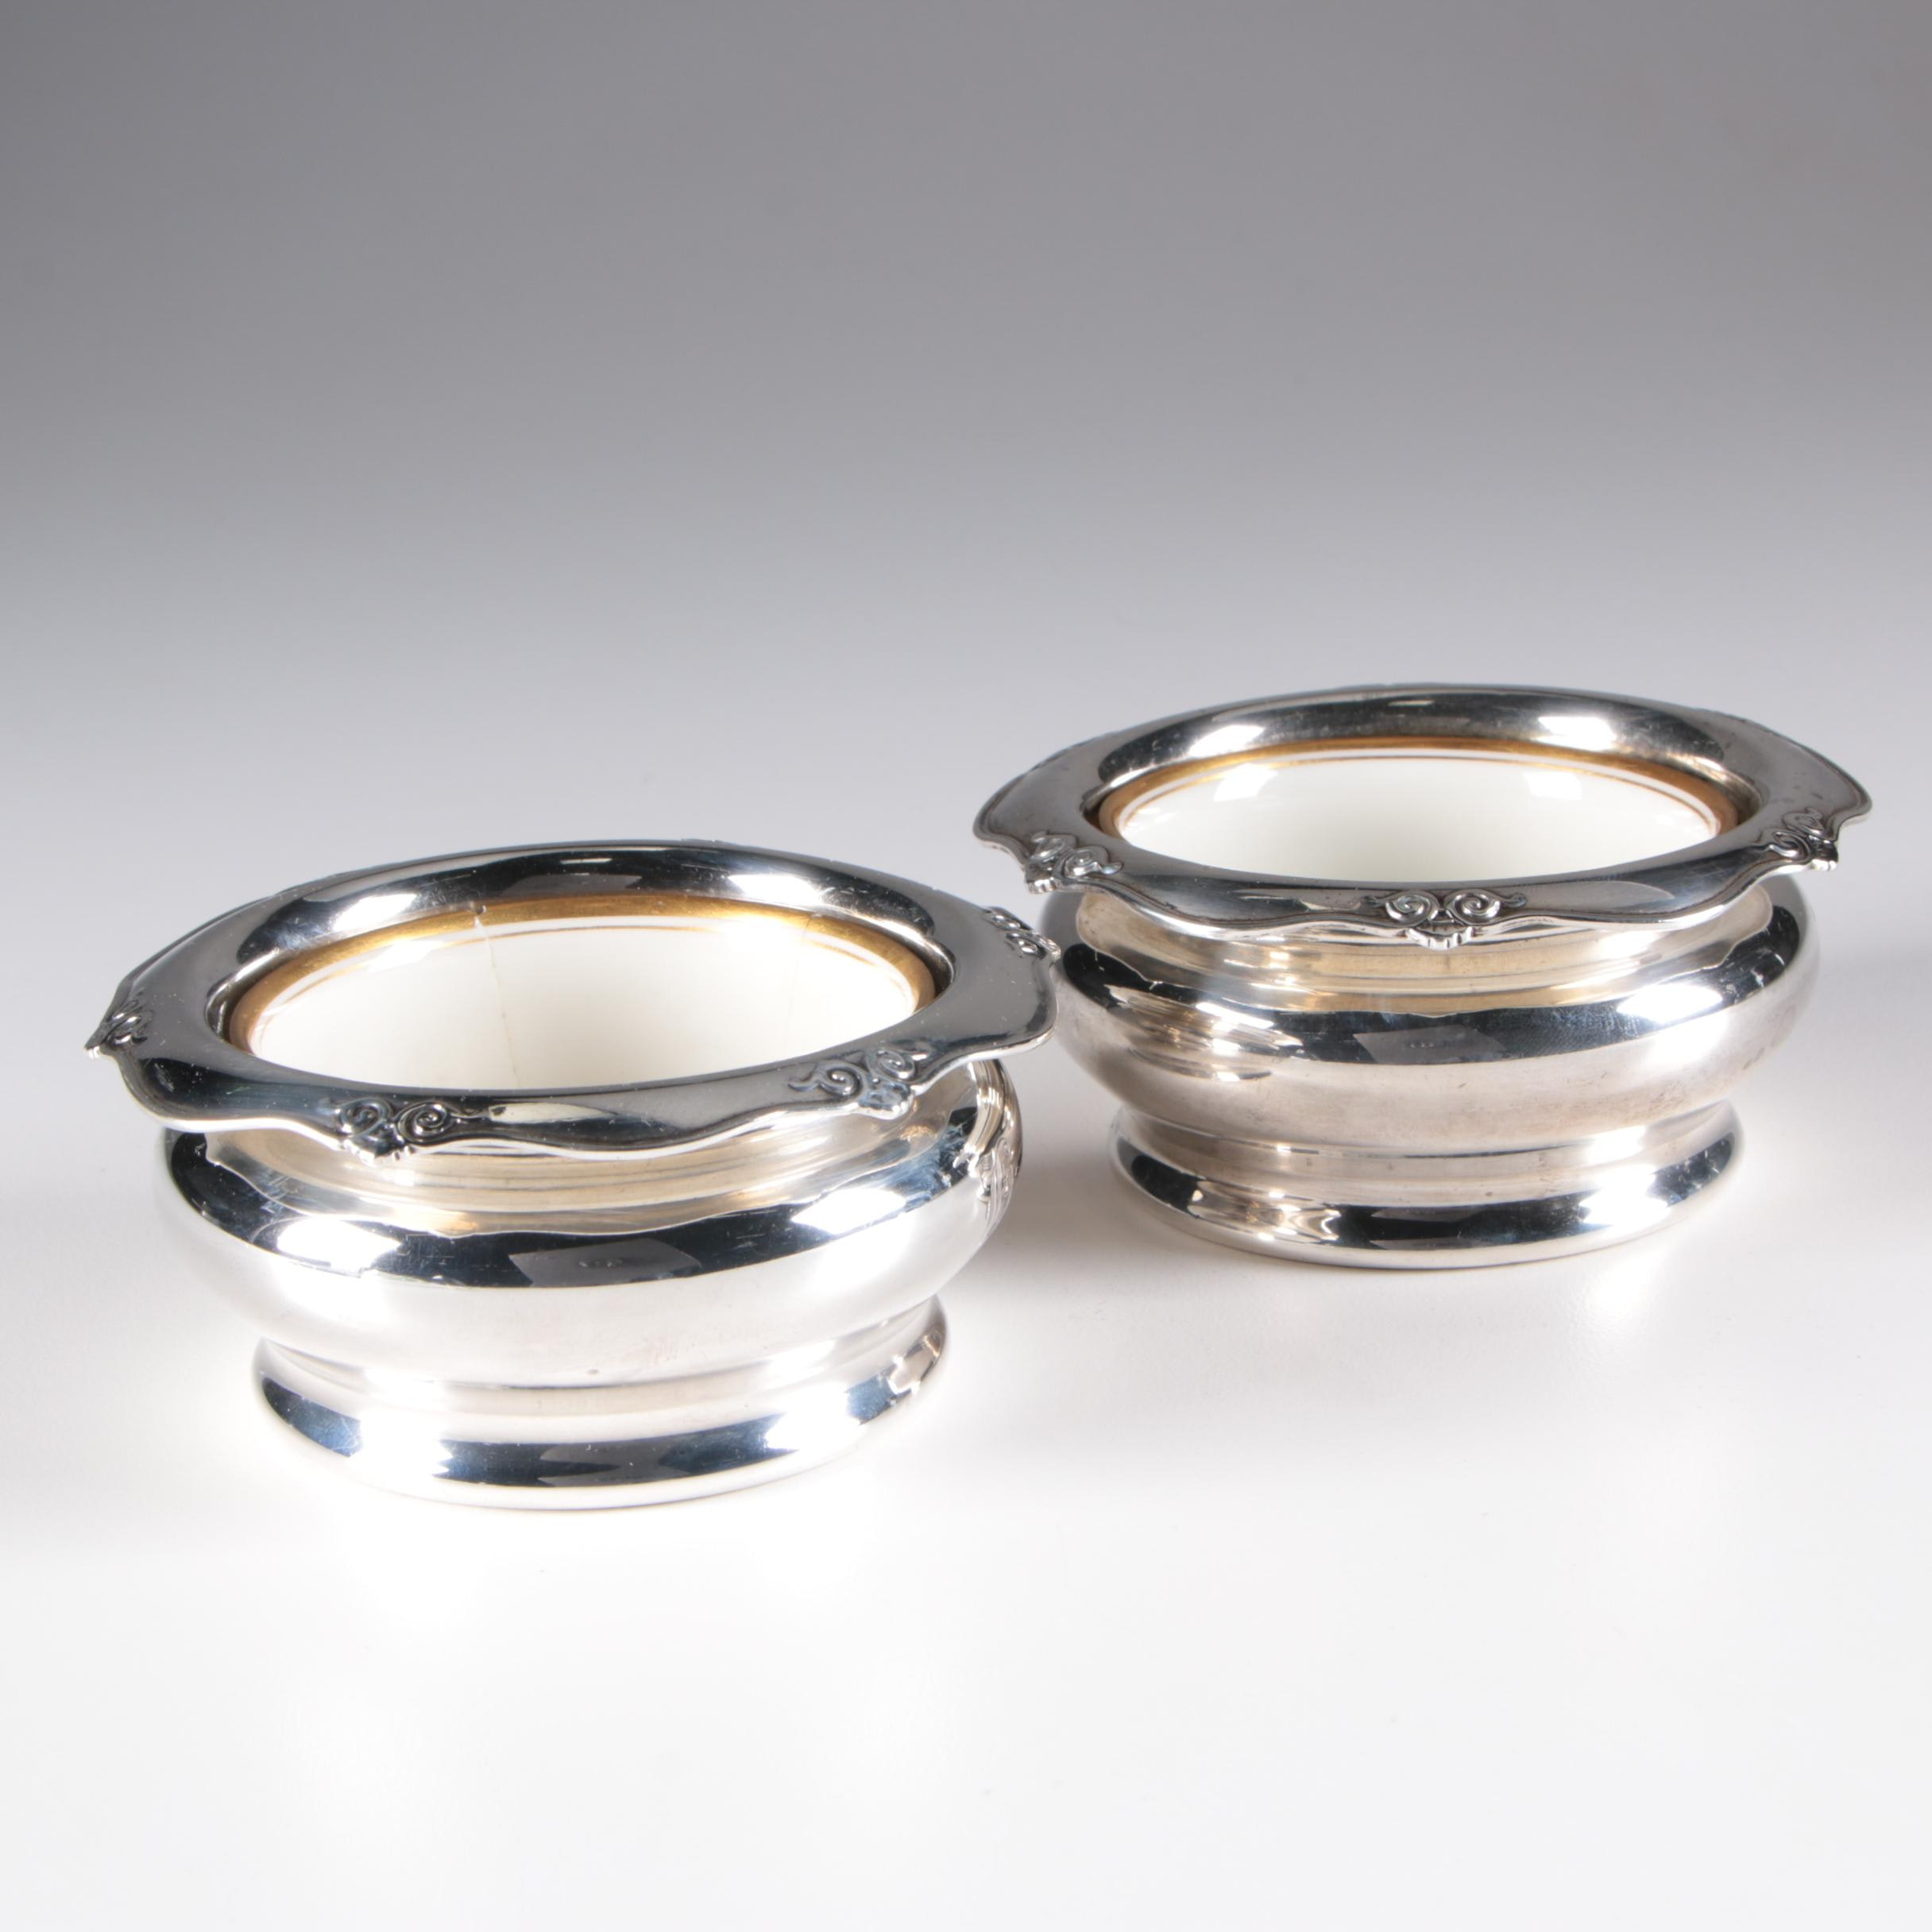 Shreve & Co. Sterling Silver Salt Cellars with Lenox Bone China Inserts